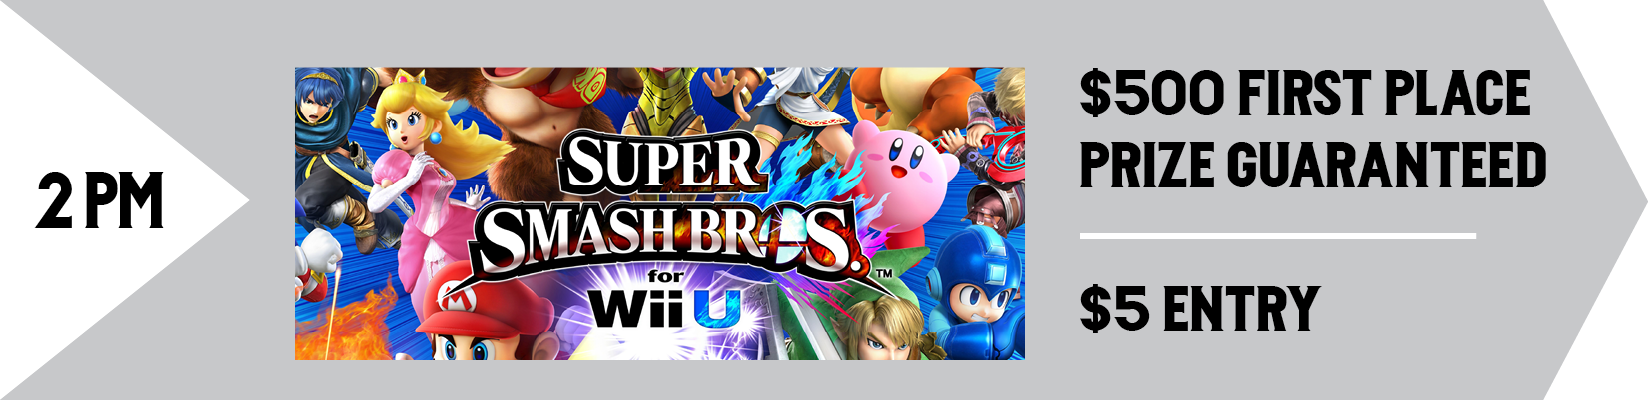 Super Smash Bros for Wii U Tournament